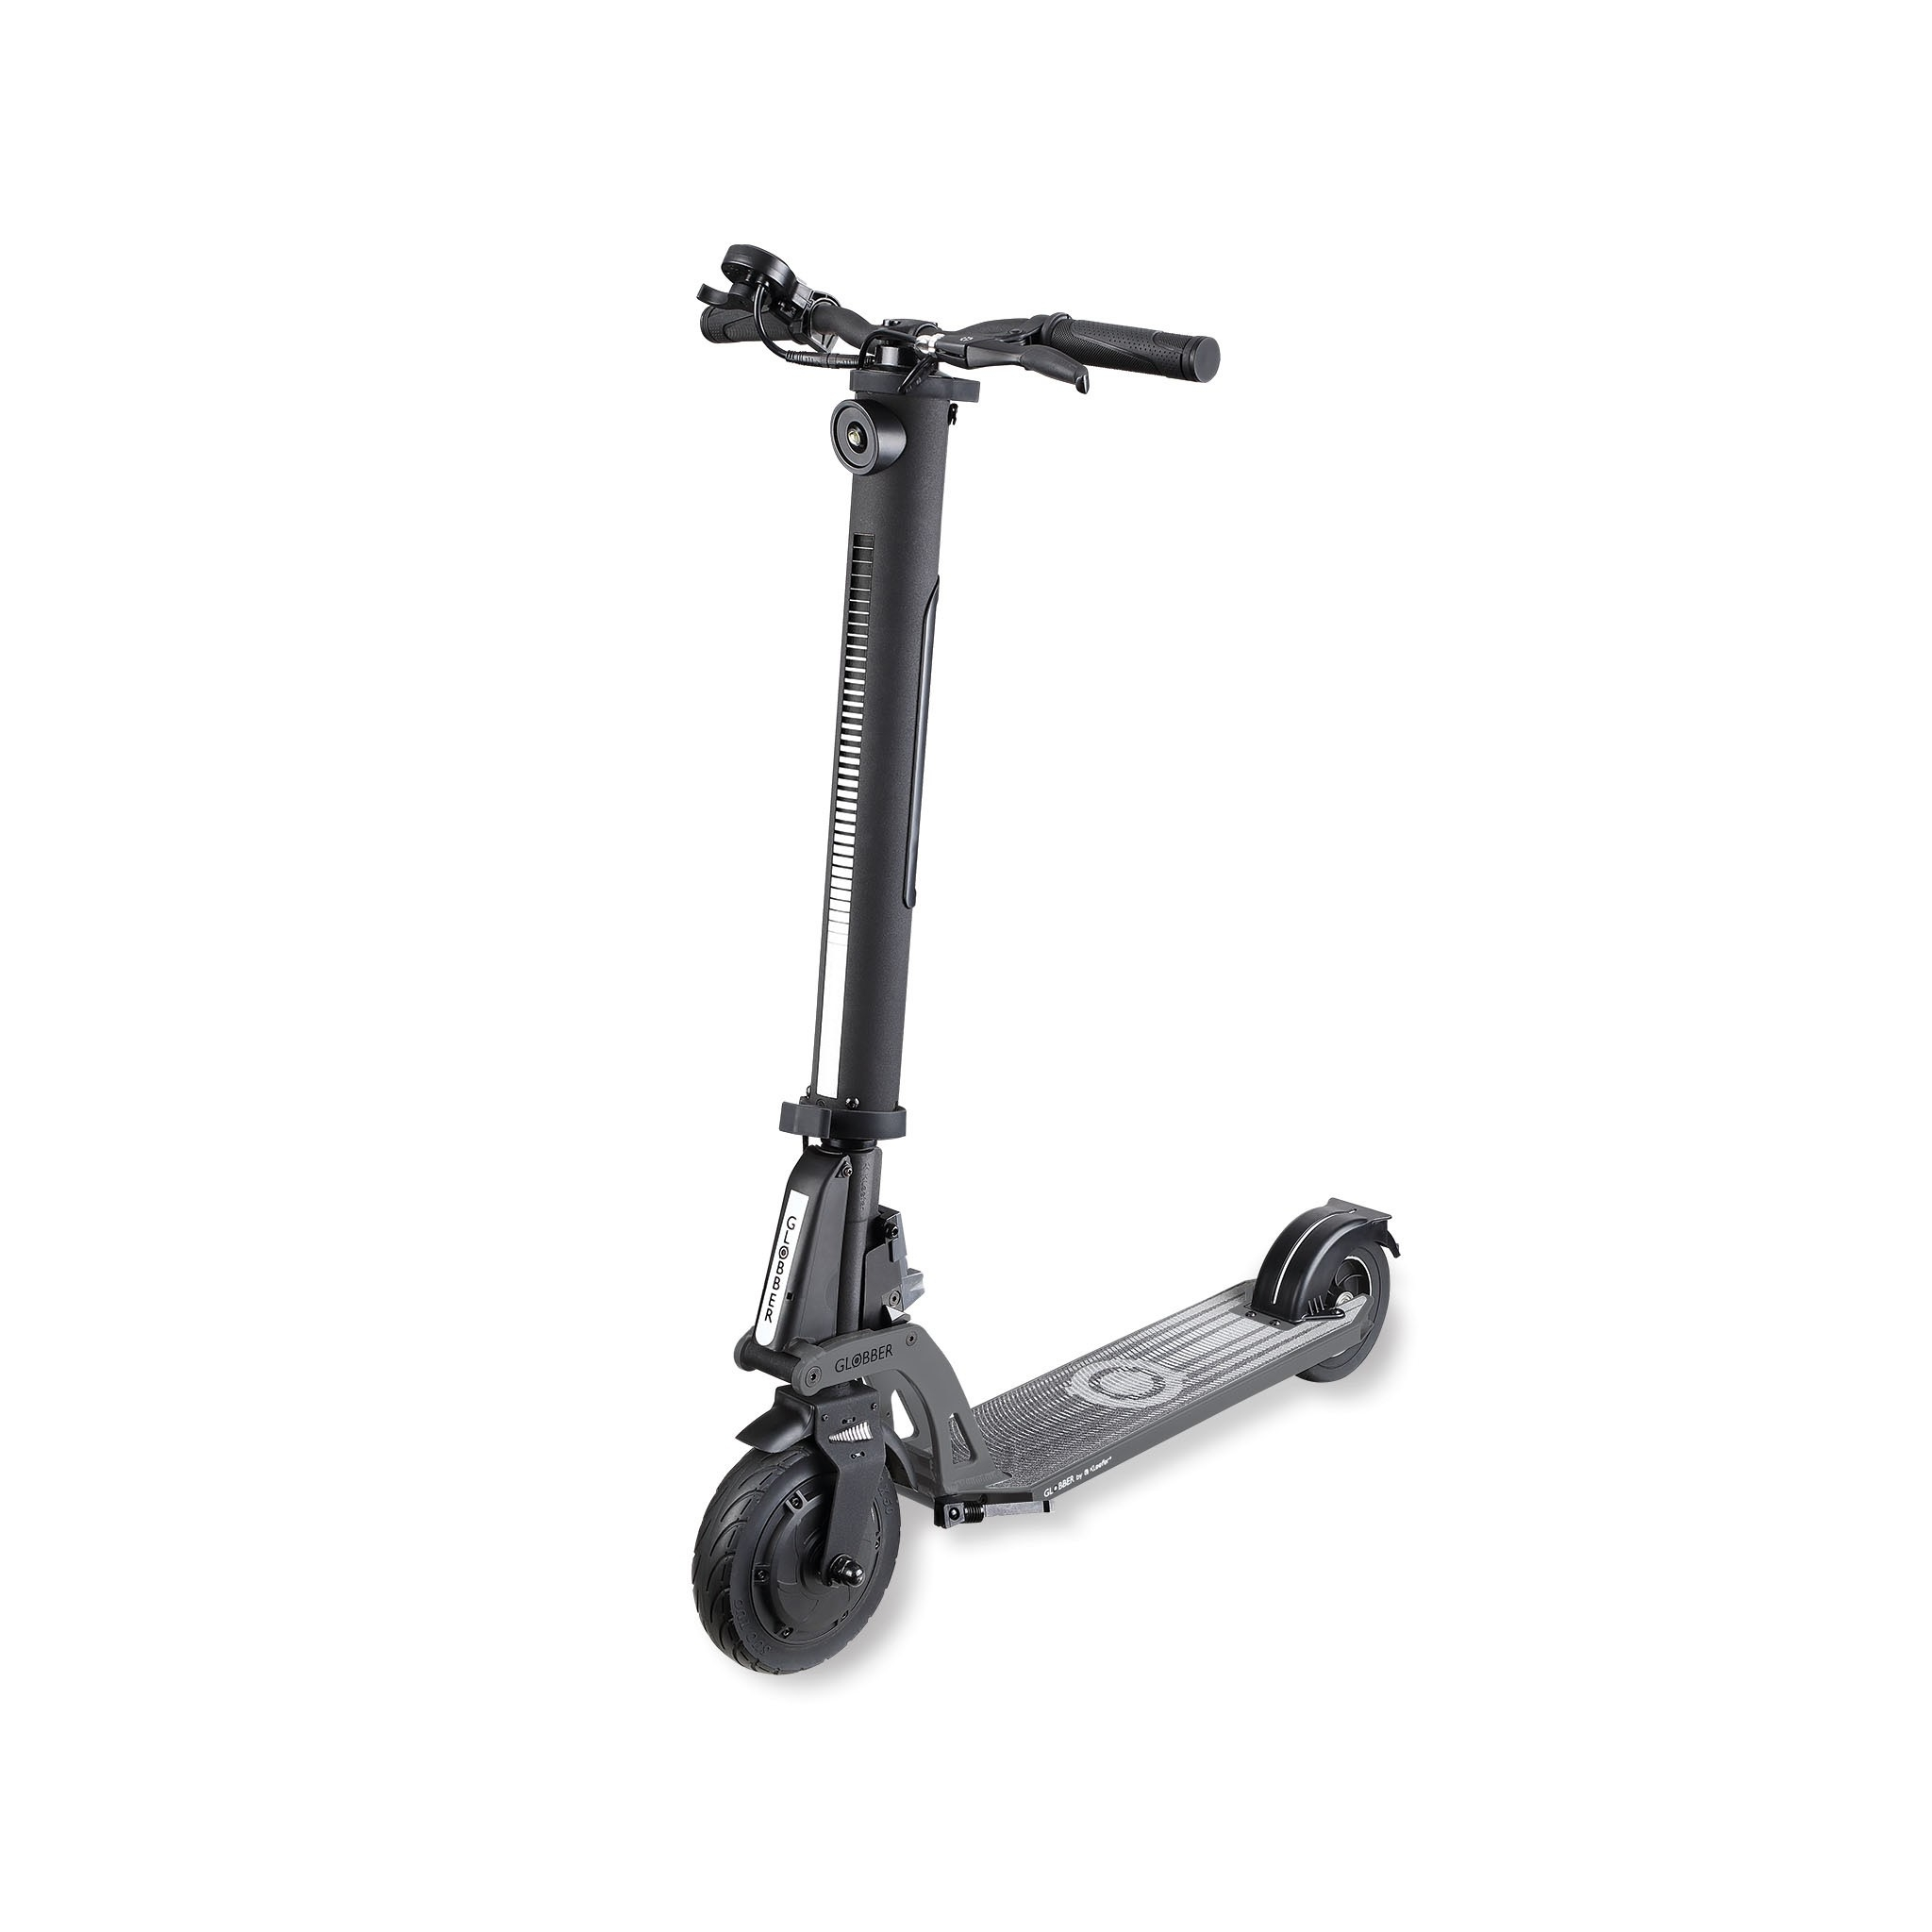 Globber ONE K E-MOTION electric scooter for adults